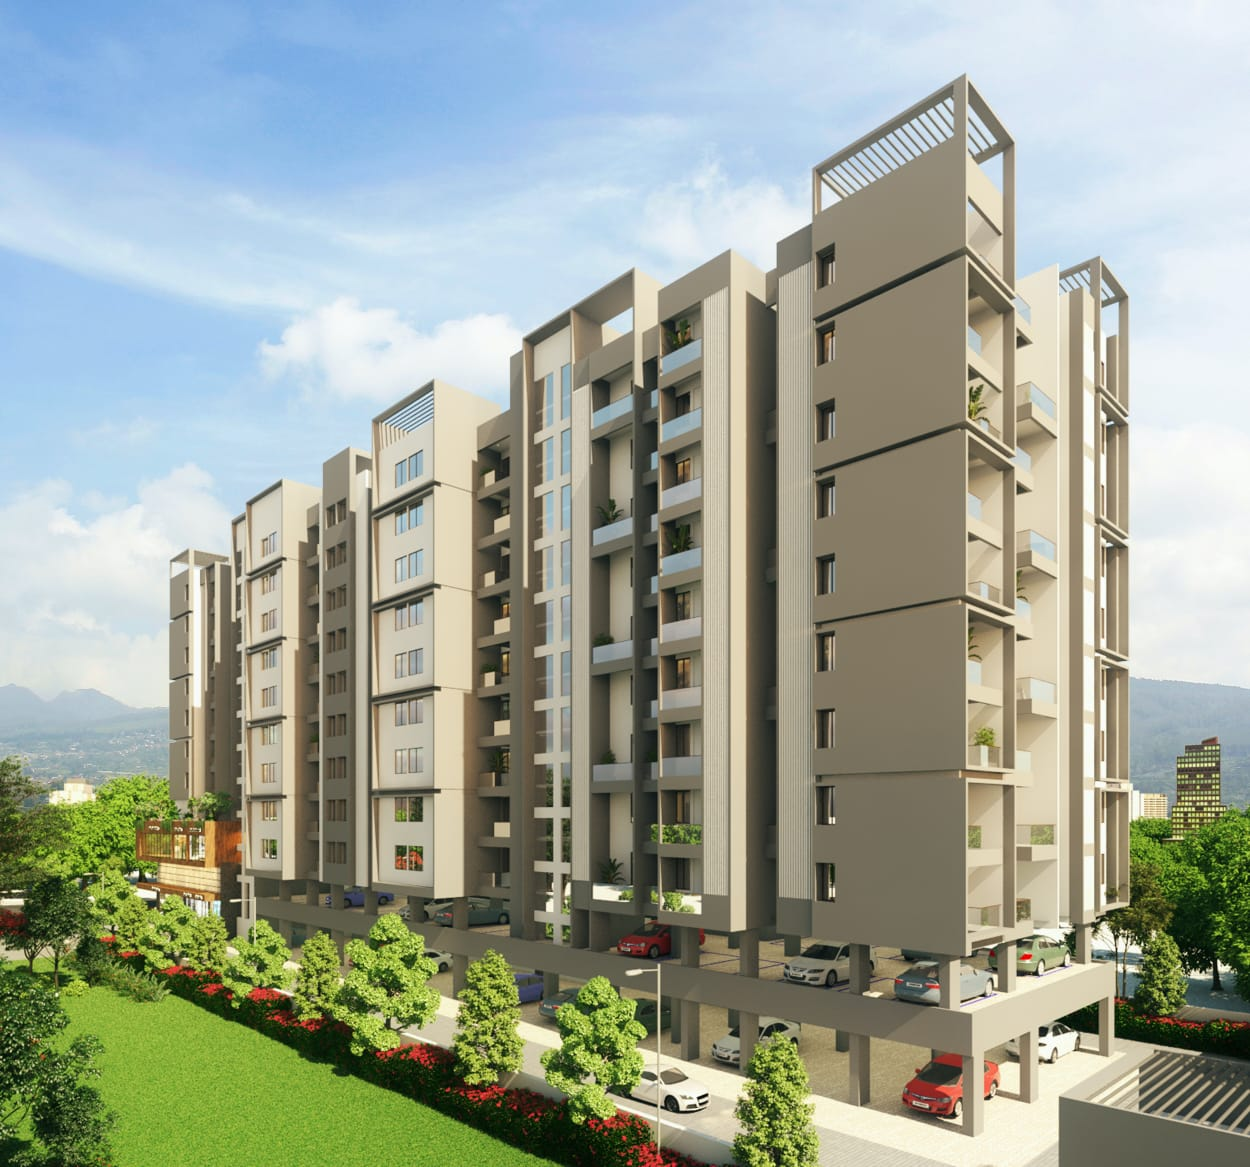 1 bhk flats for sale in tathawade